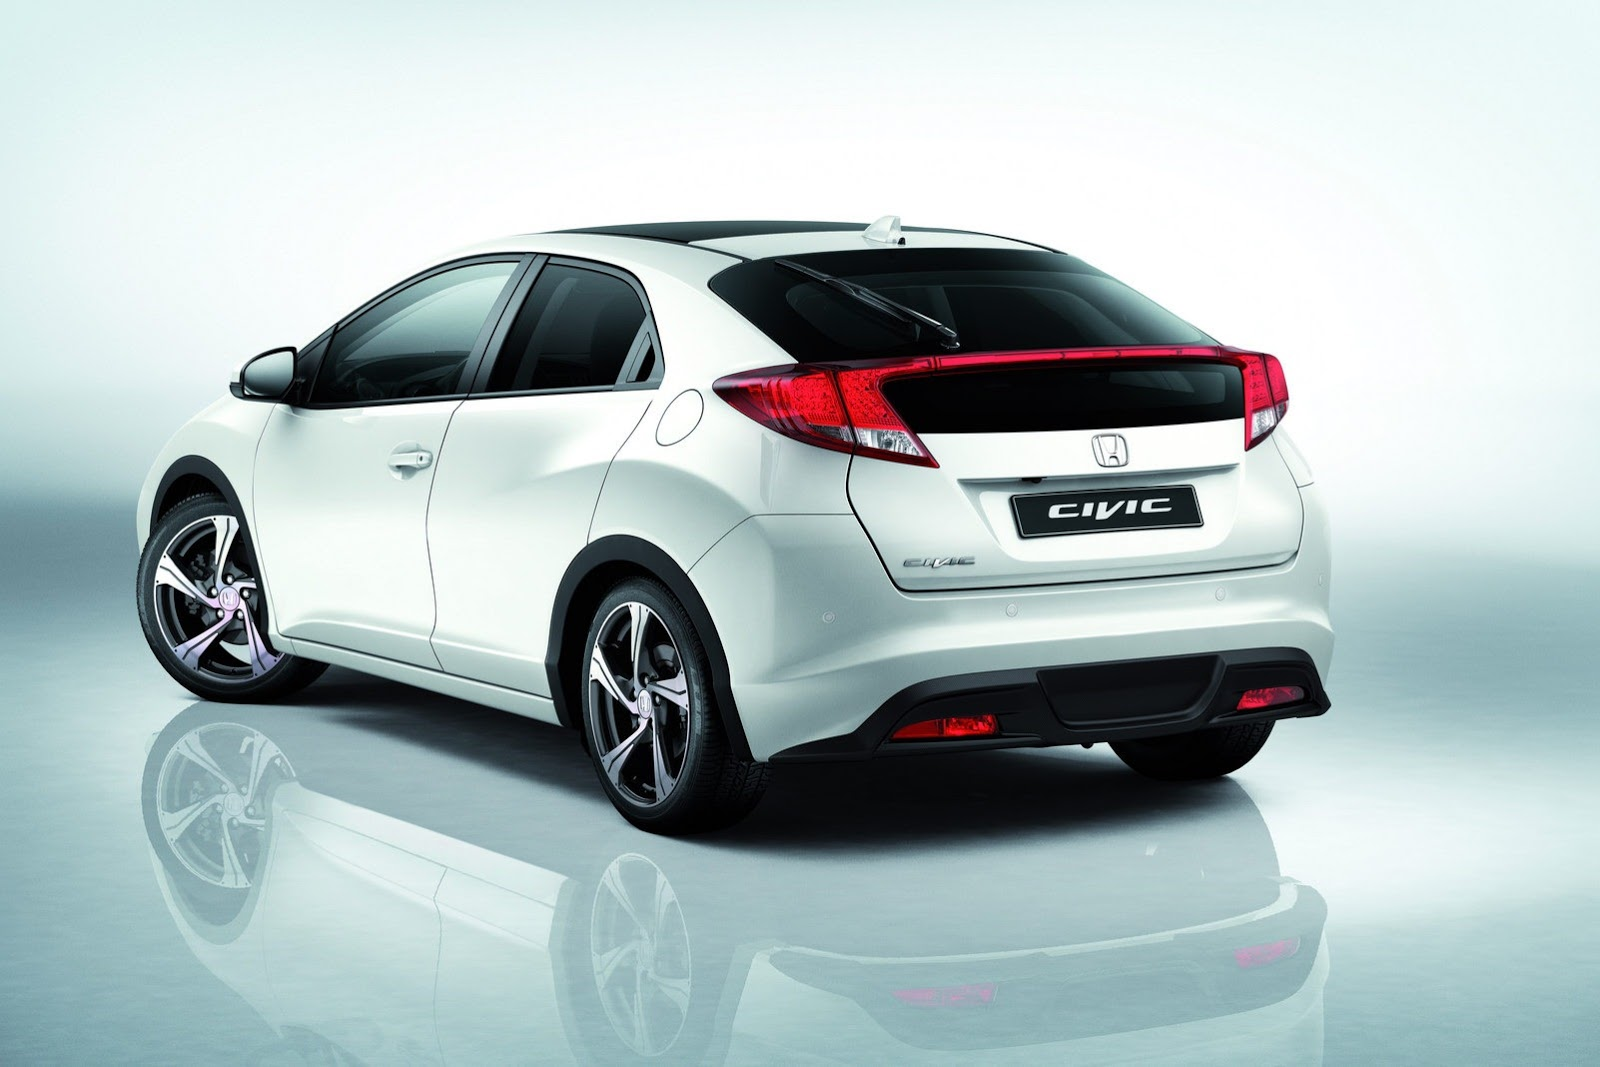 Honda Spices European Civic up With Aero Package Free Download Image Of